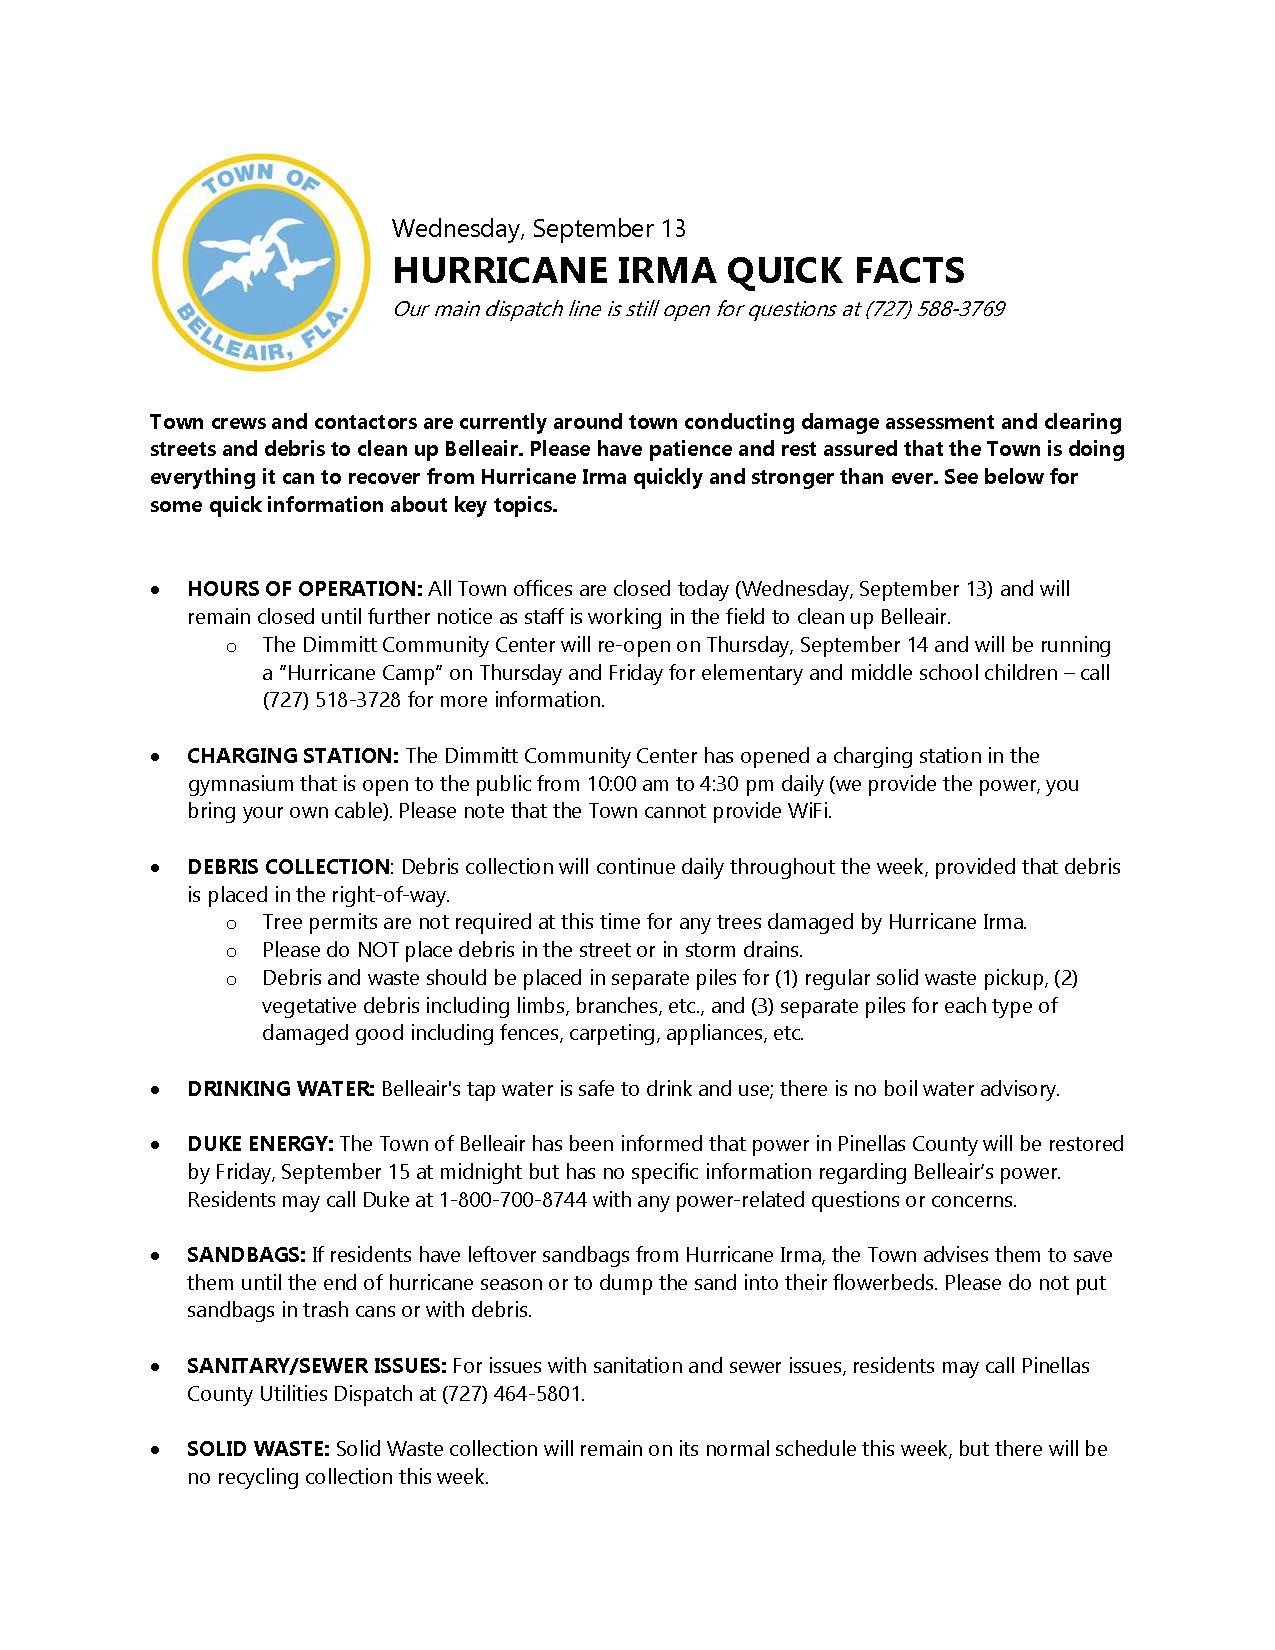 Town Of Belleair On Twitter View The Image Below Or Click Working Contactors Link To See Todays Post Irma Update For Faqs And Key Topics